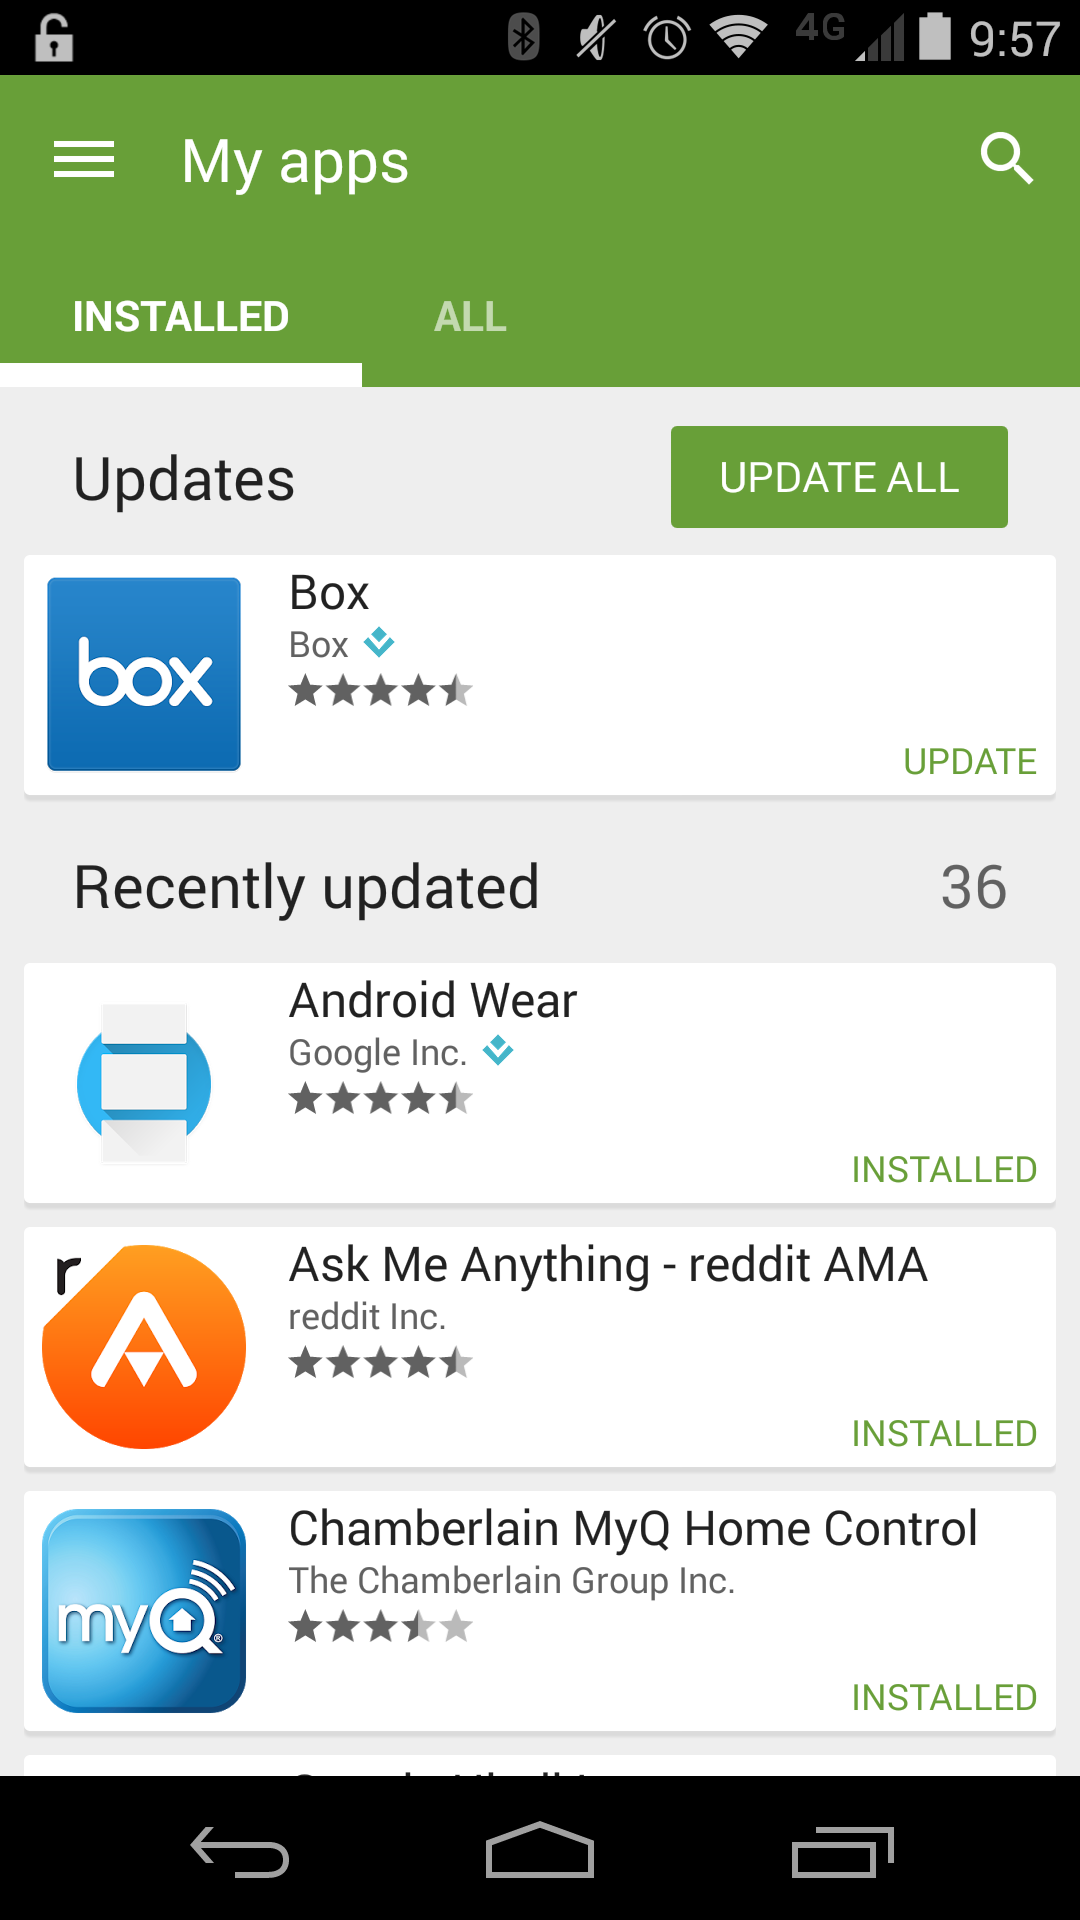 Google Play App Roundup Instagram Another World Tasks: Google Play Store 5.0 With Even More Material Design